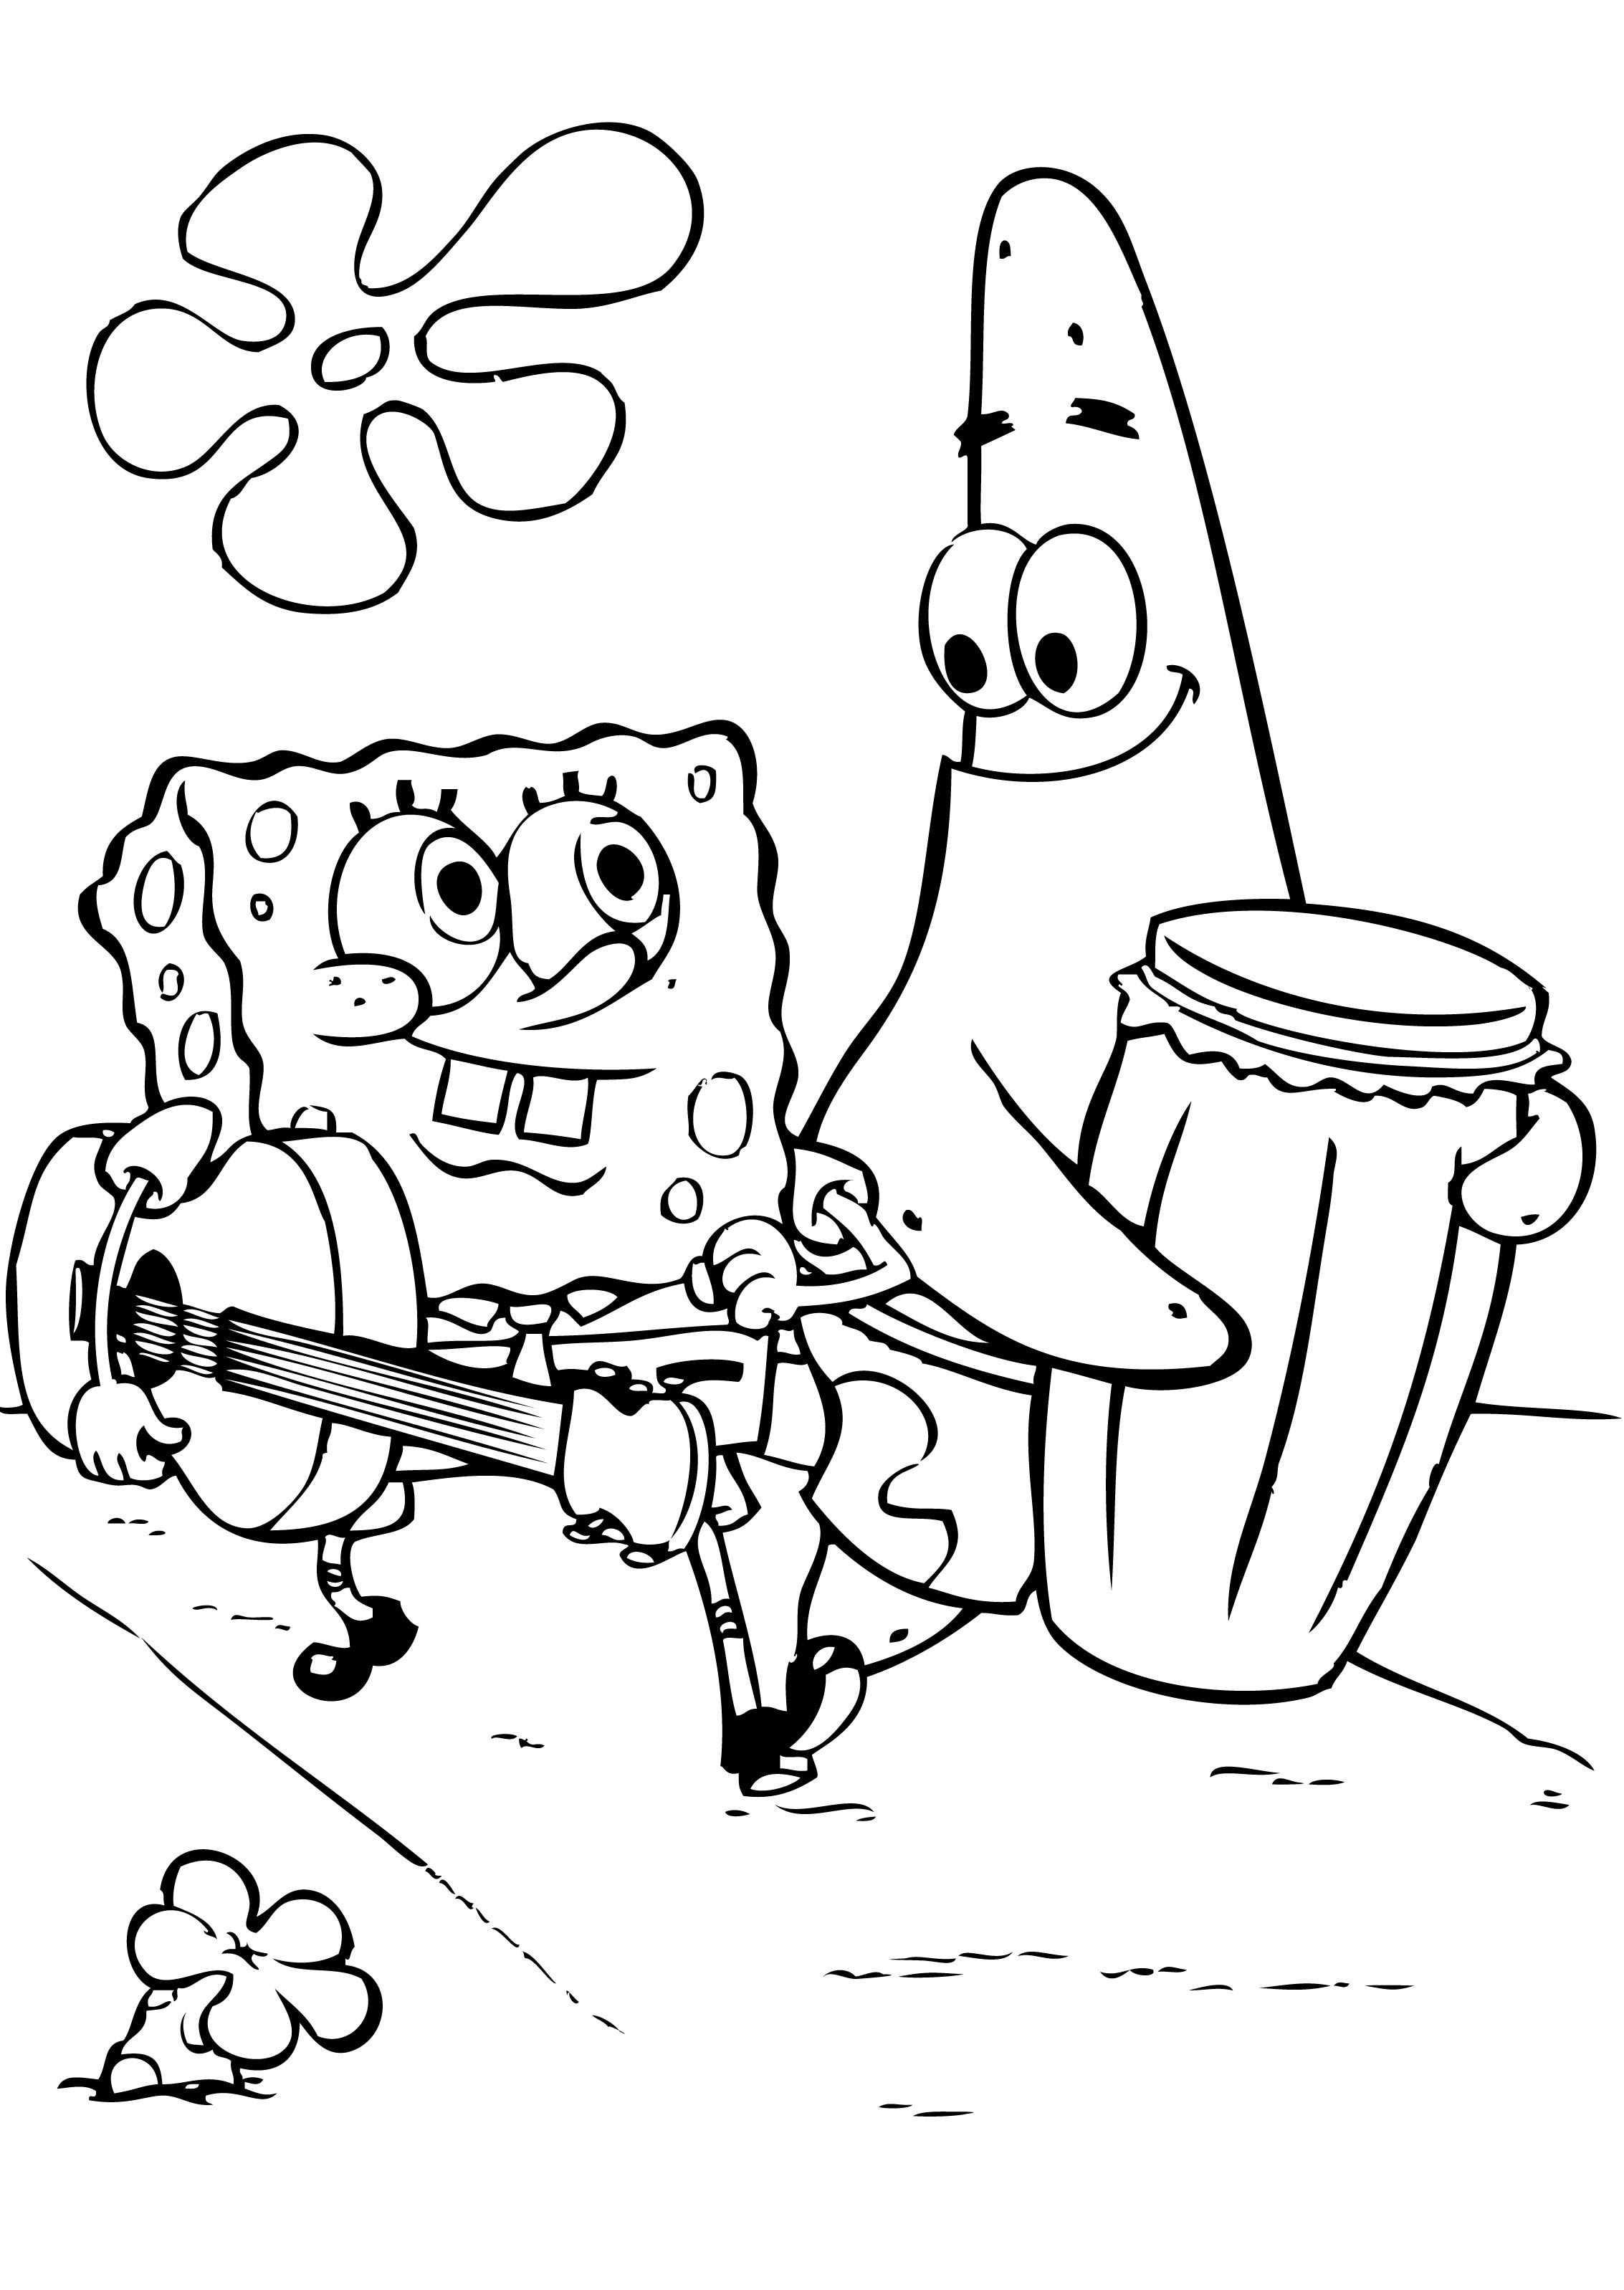 Awesome Color Spongebob Free Download Colouring Pages